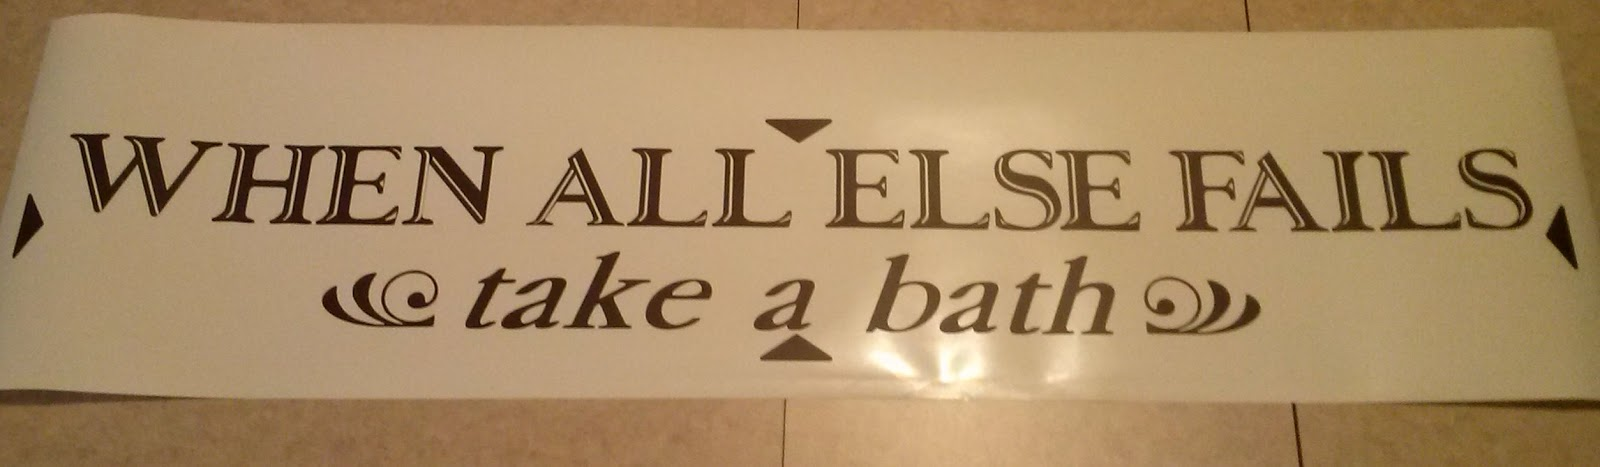 vinyl wall decal when all else fails take a bath